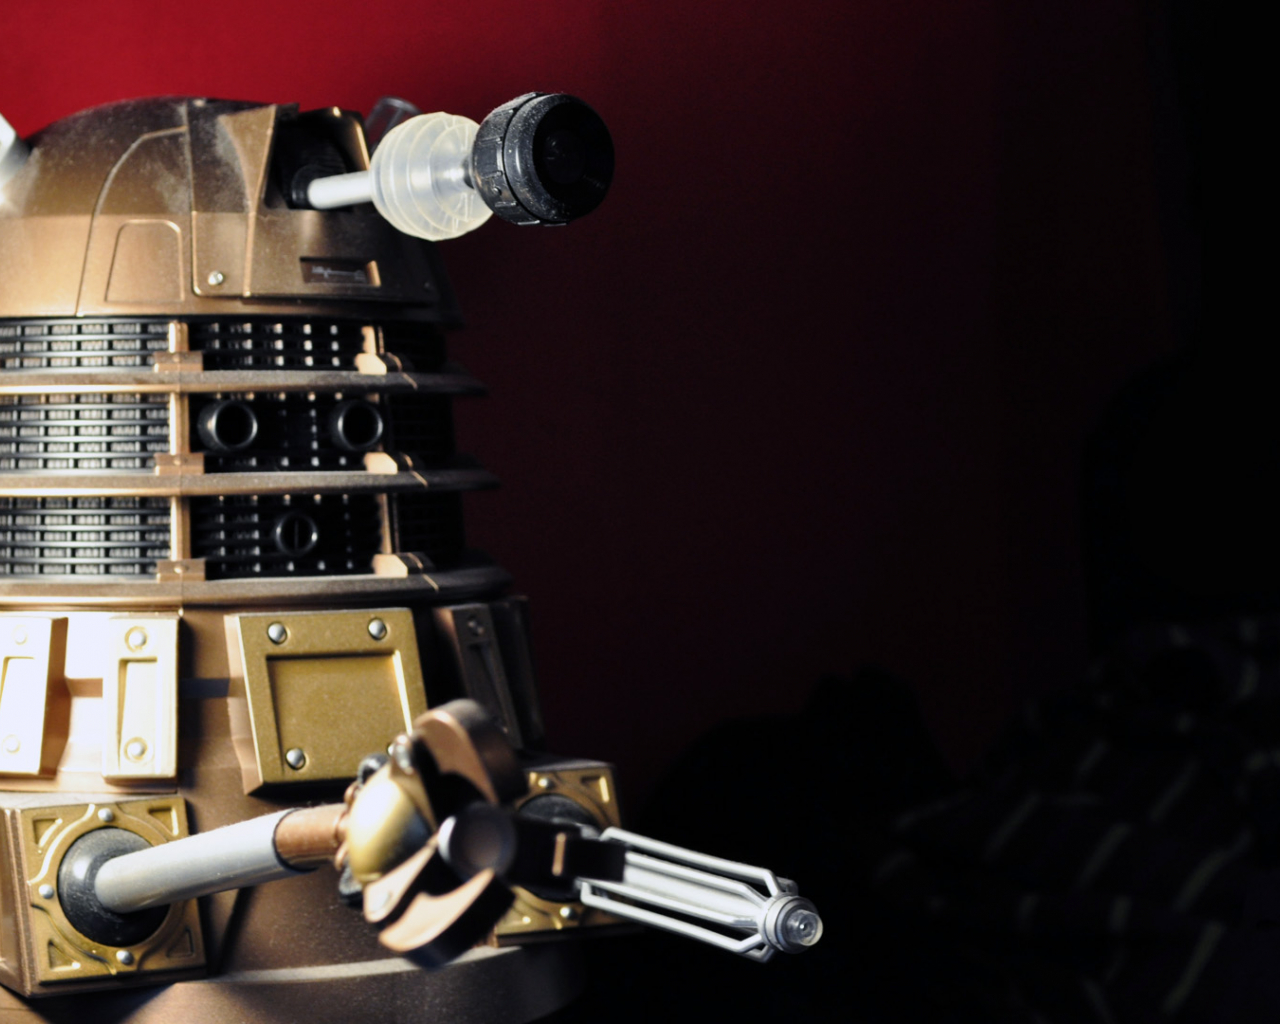 Free Download Dalek Hd Wallpaper 1920x1080 For Your